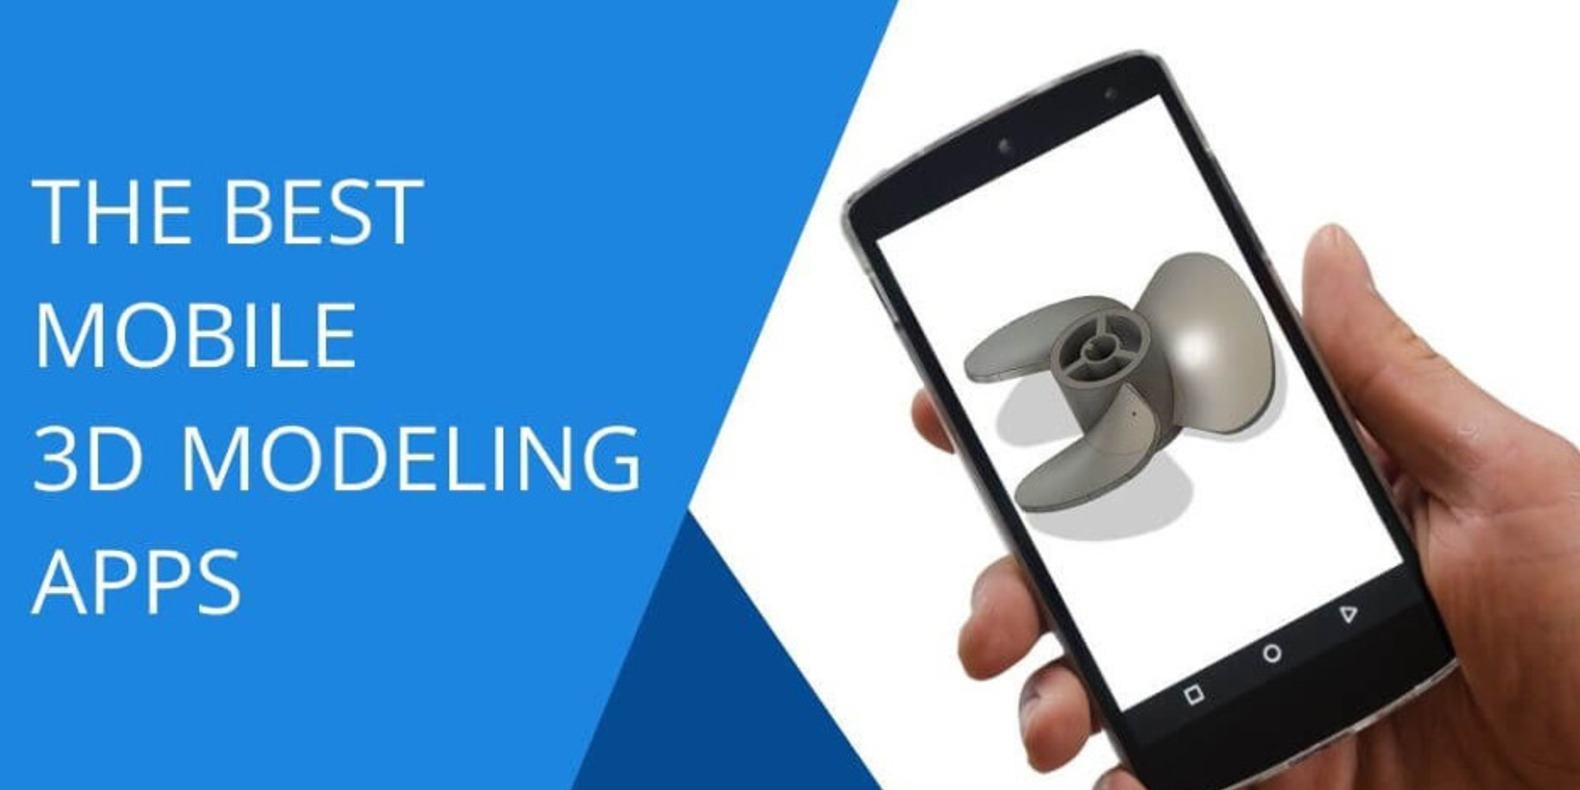 Top 3D Modeling Apps to Choose in 2020